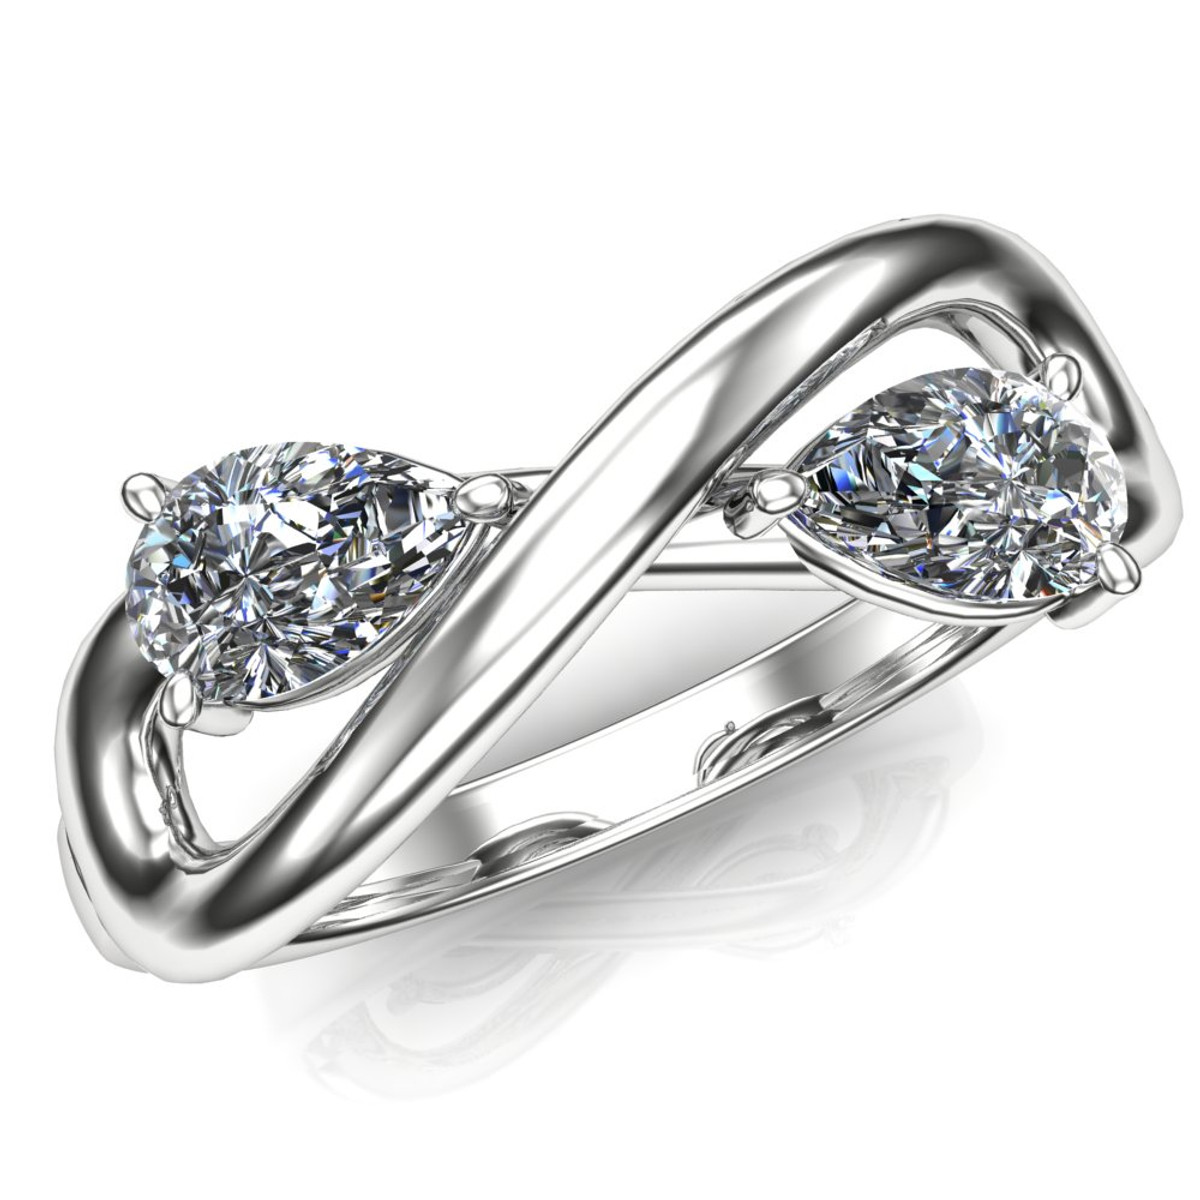 Diamond Engagement Ring Two Stone with Infinity Symbol